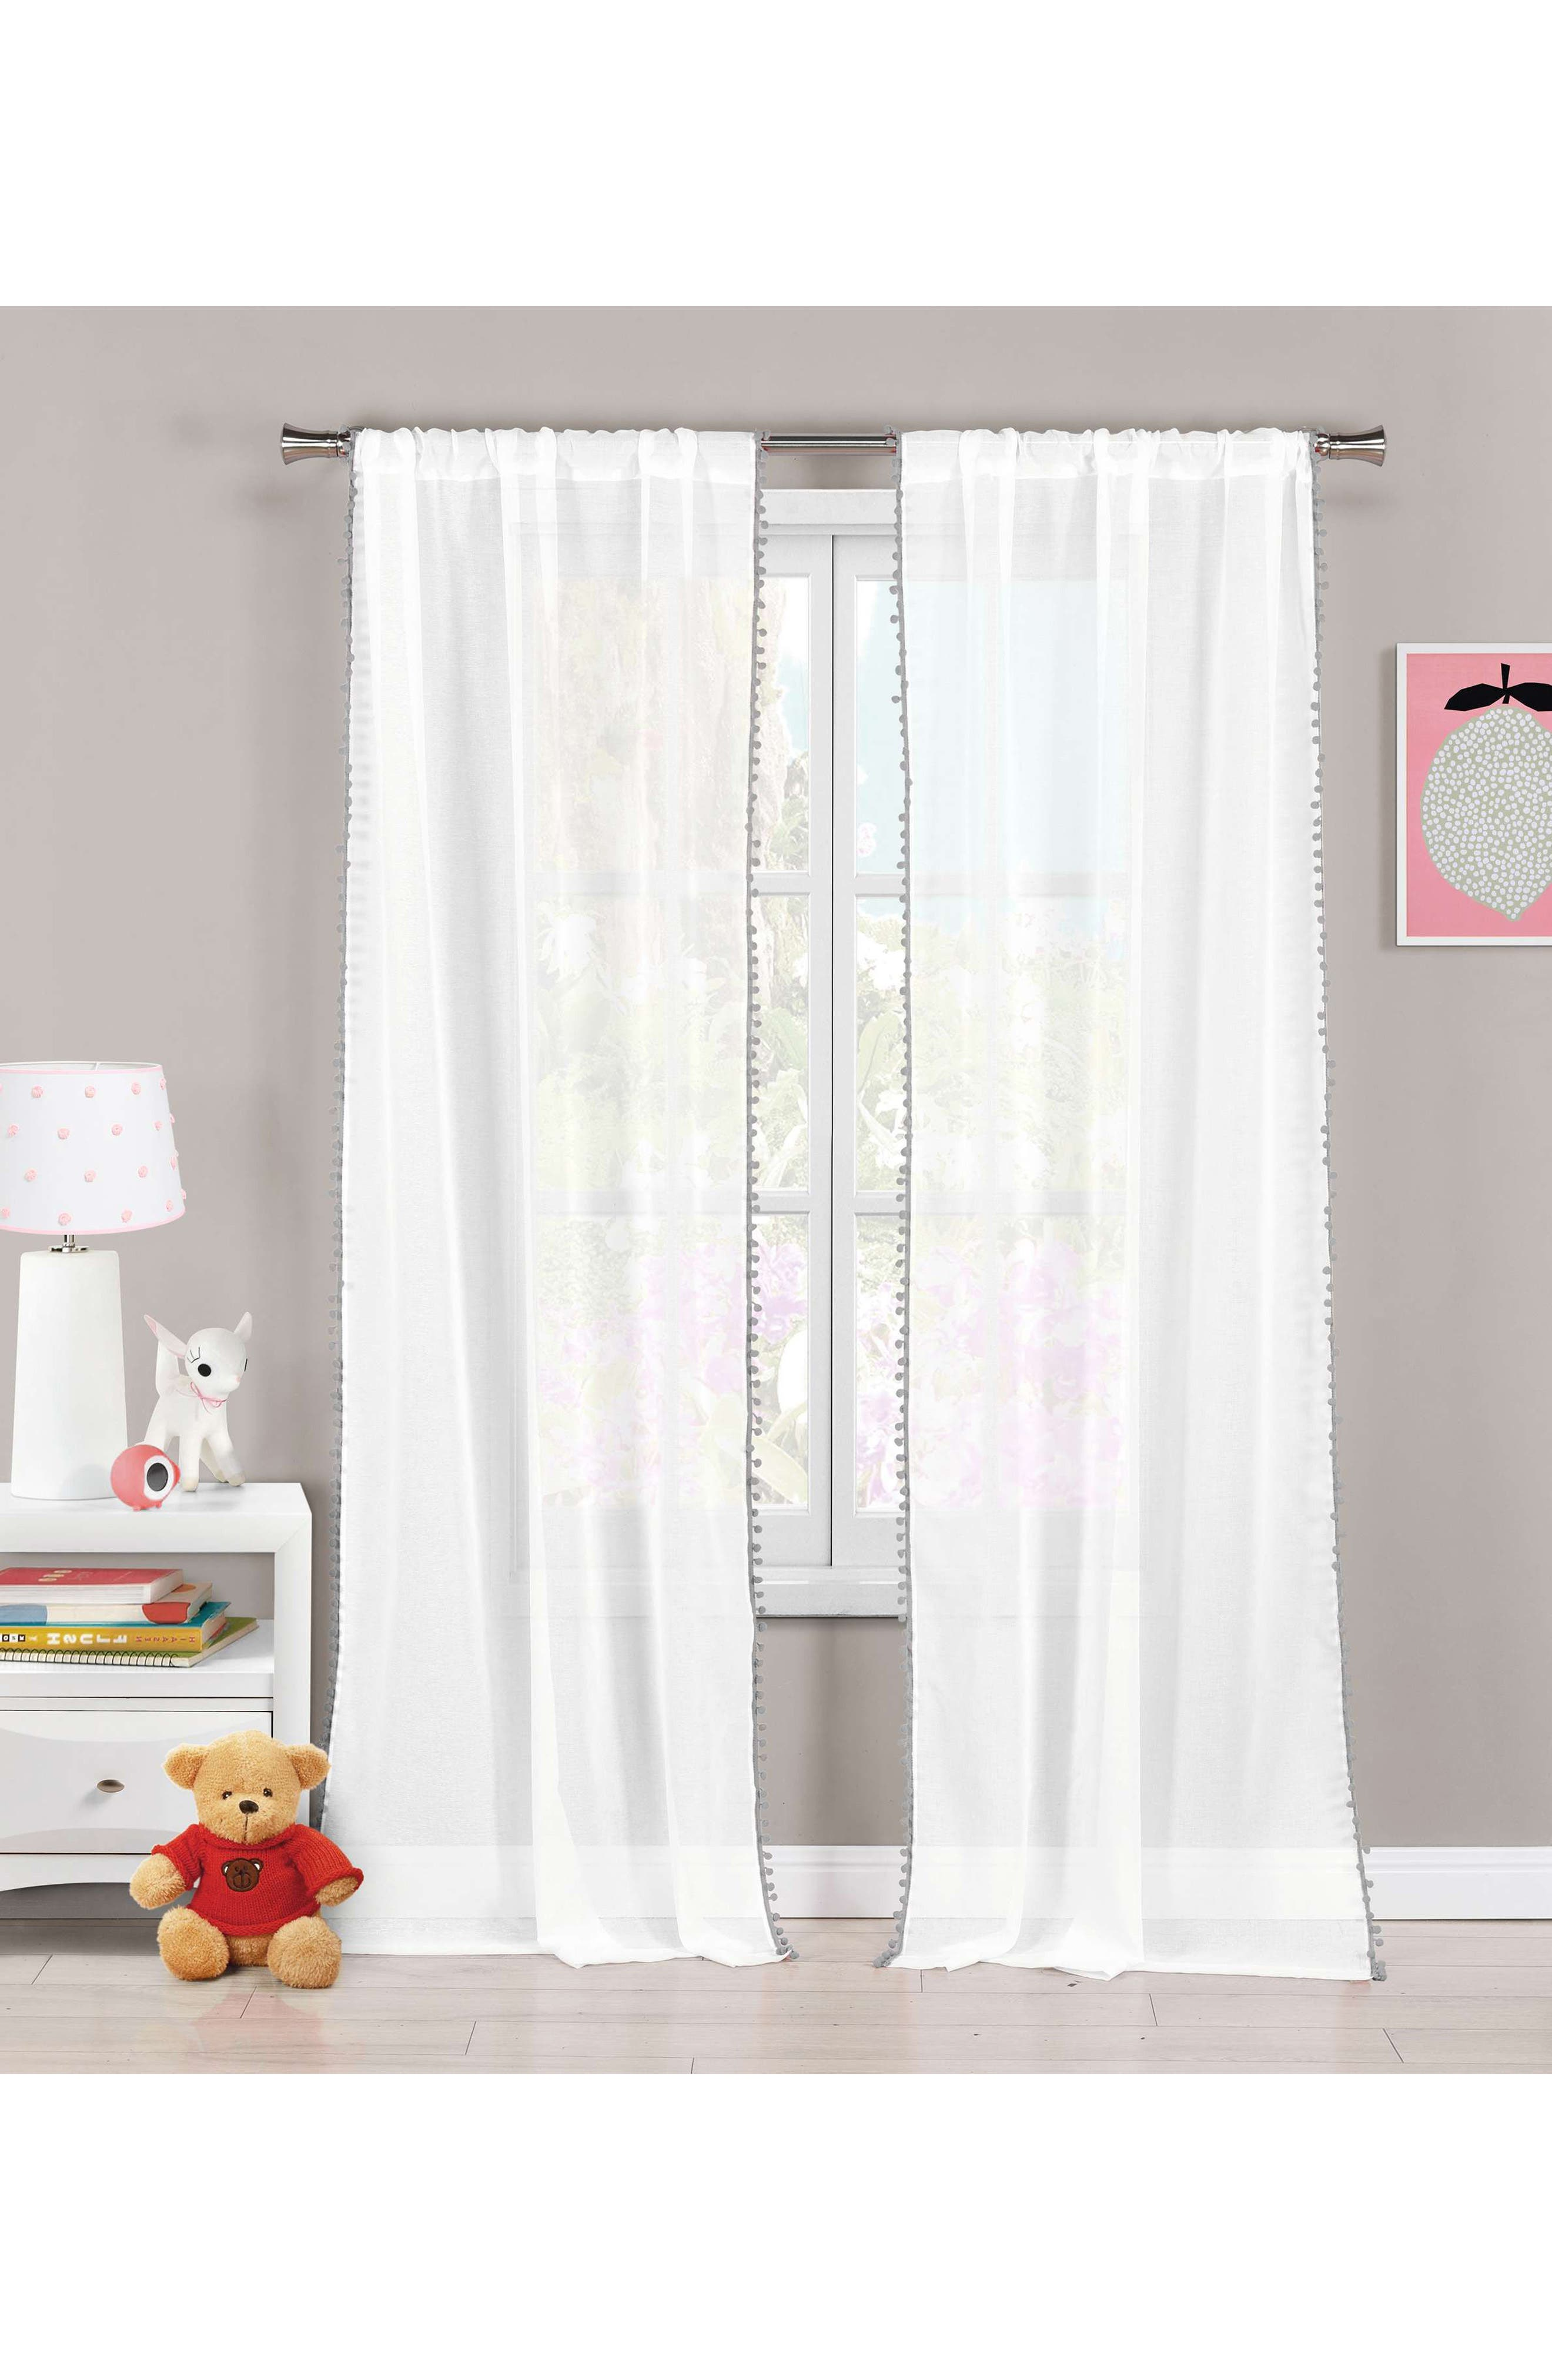 LALA + BASH Aveline Pom Trim Curtain Panels